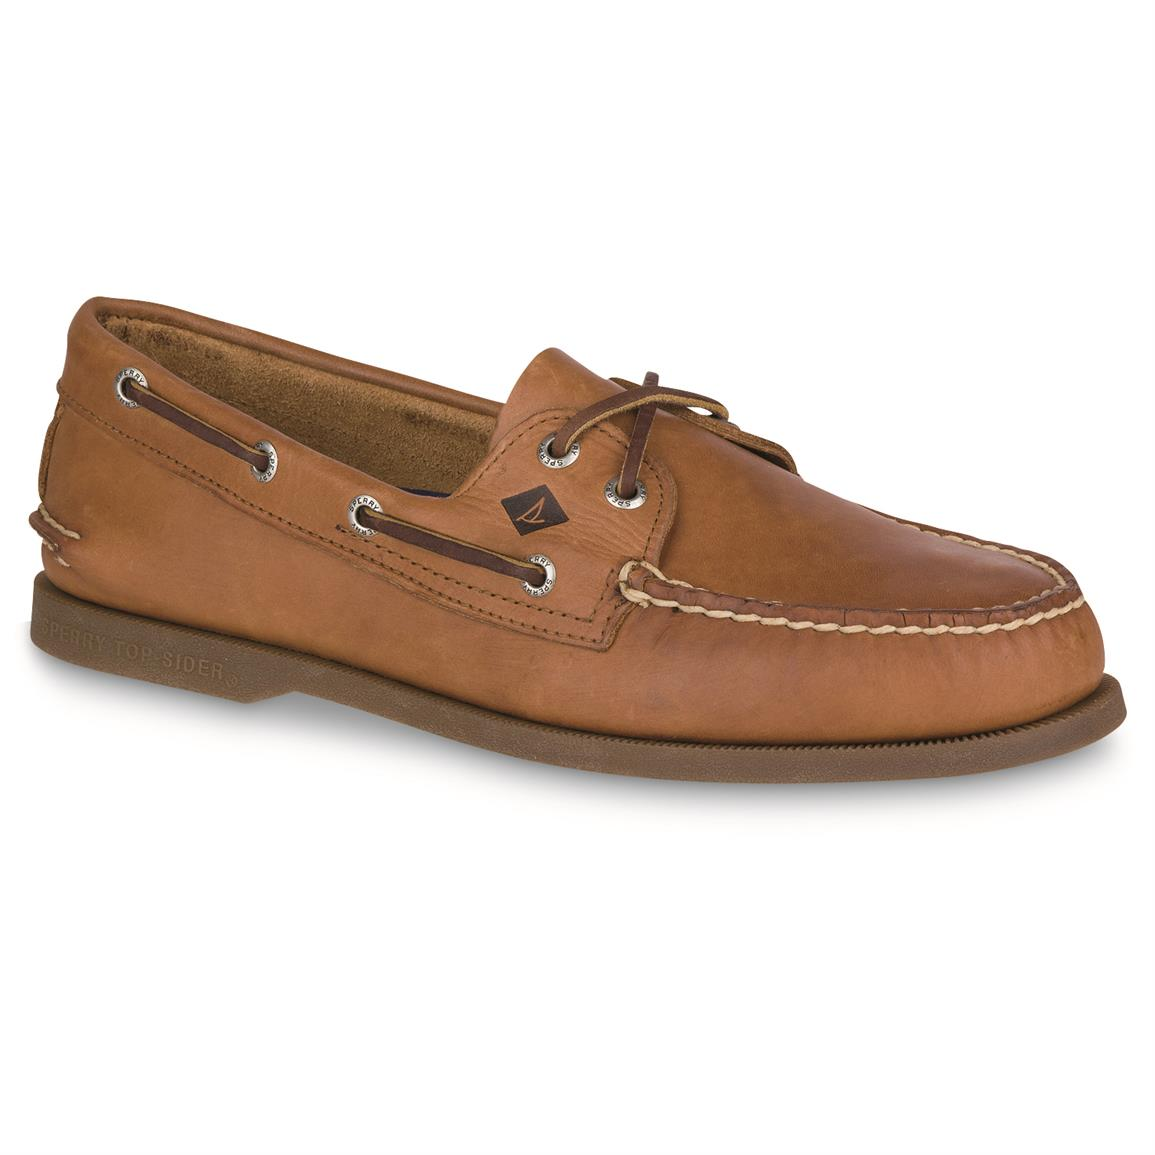 Sperry Men's Authentic Original 2 Eye Boat Shoes, Sahara